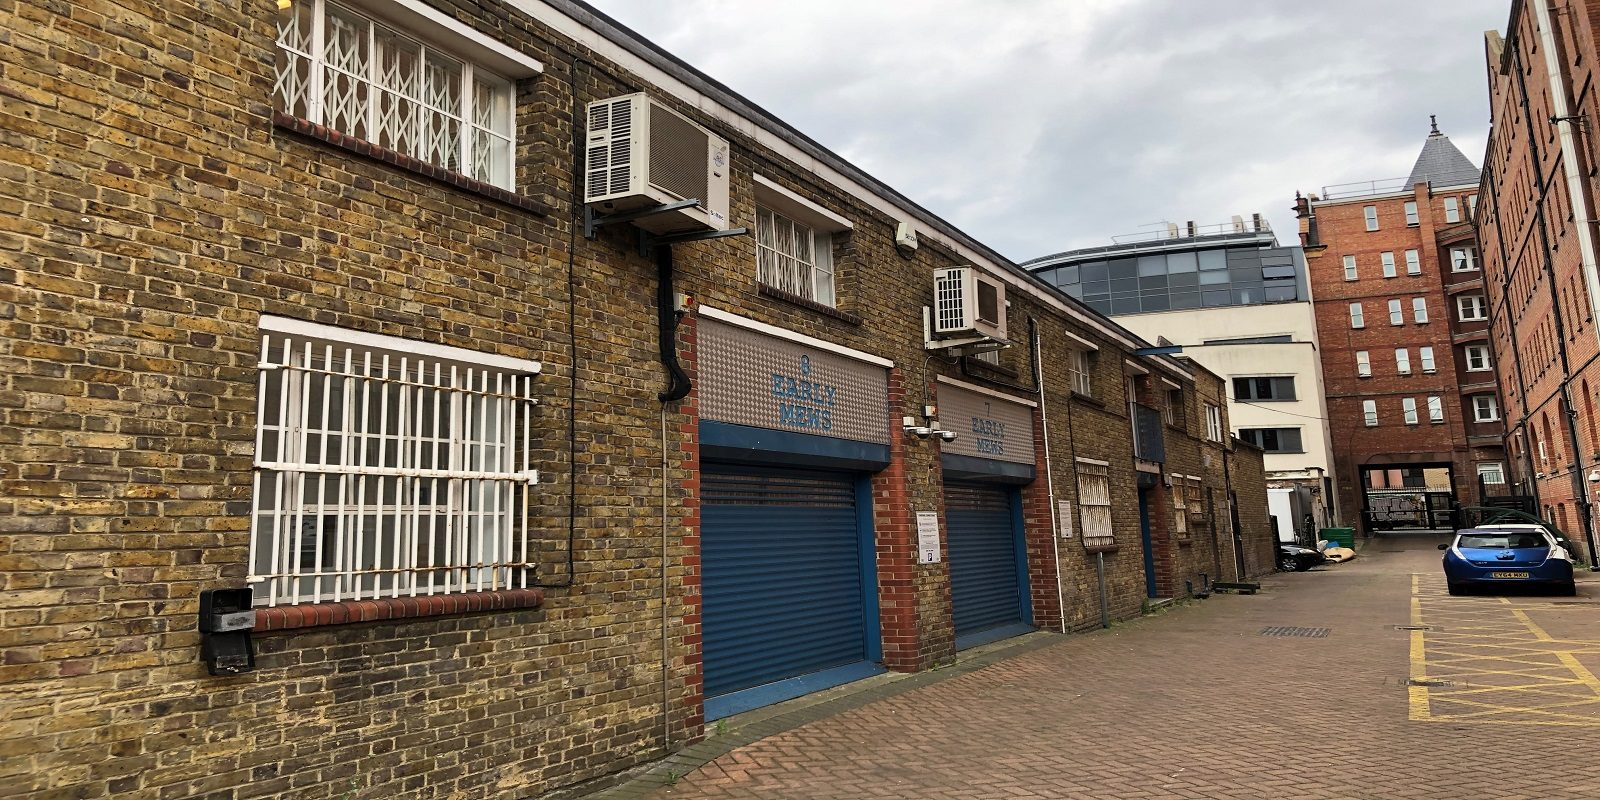 CENTRALLY LOCATED FREEHOLD OFFICE INVESTMENT FOR SALE: 7-8 Early Mews, Camden, London NW1 7HG